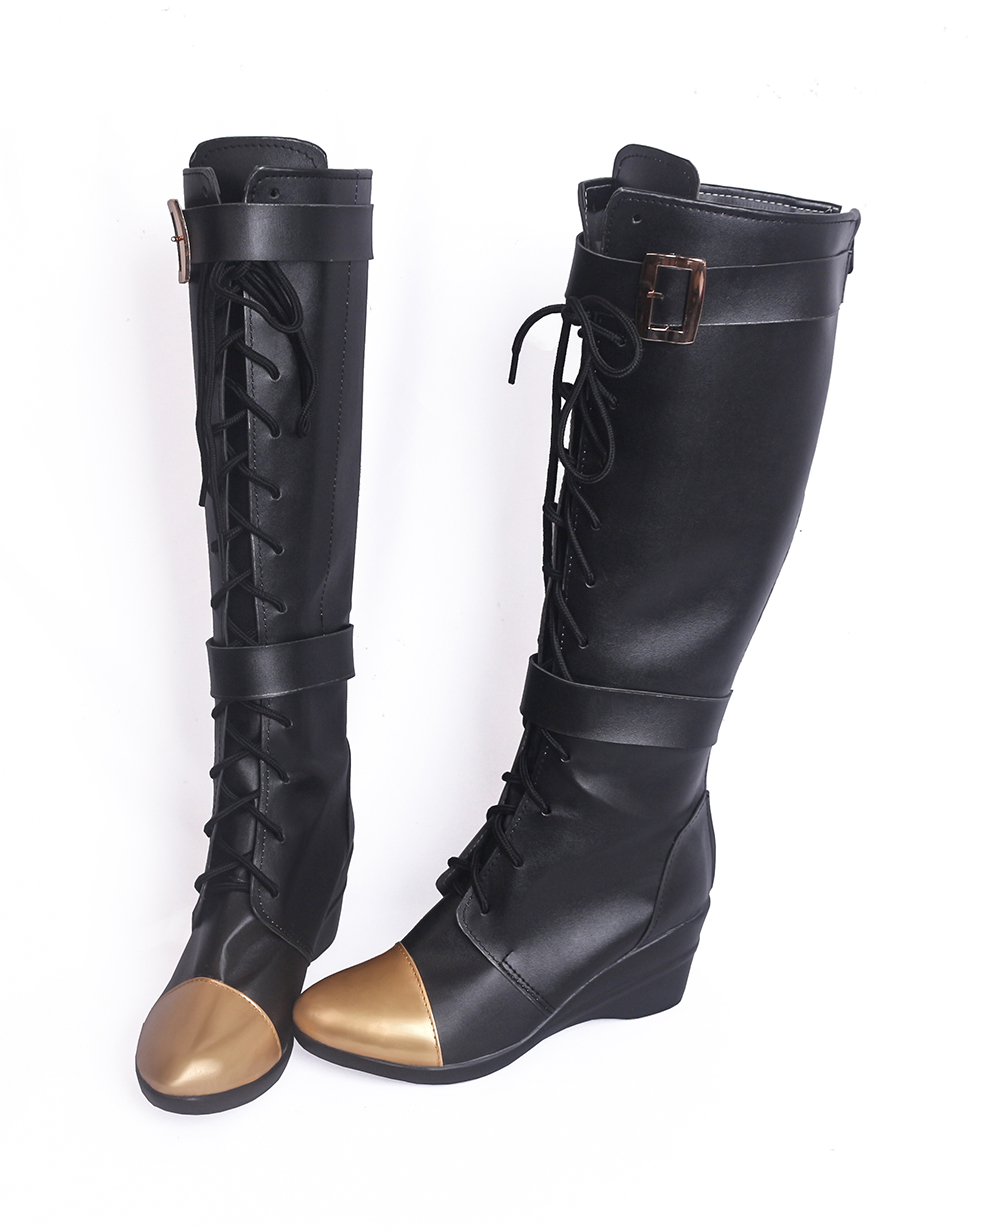 LOL Caitlyn the Sheriff of Piltover Cosplay Boots Shoes (4)